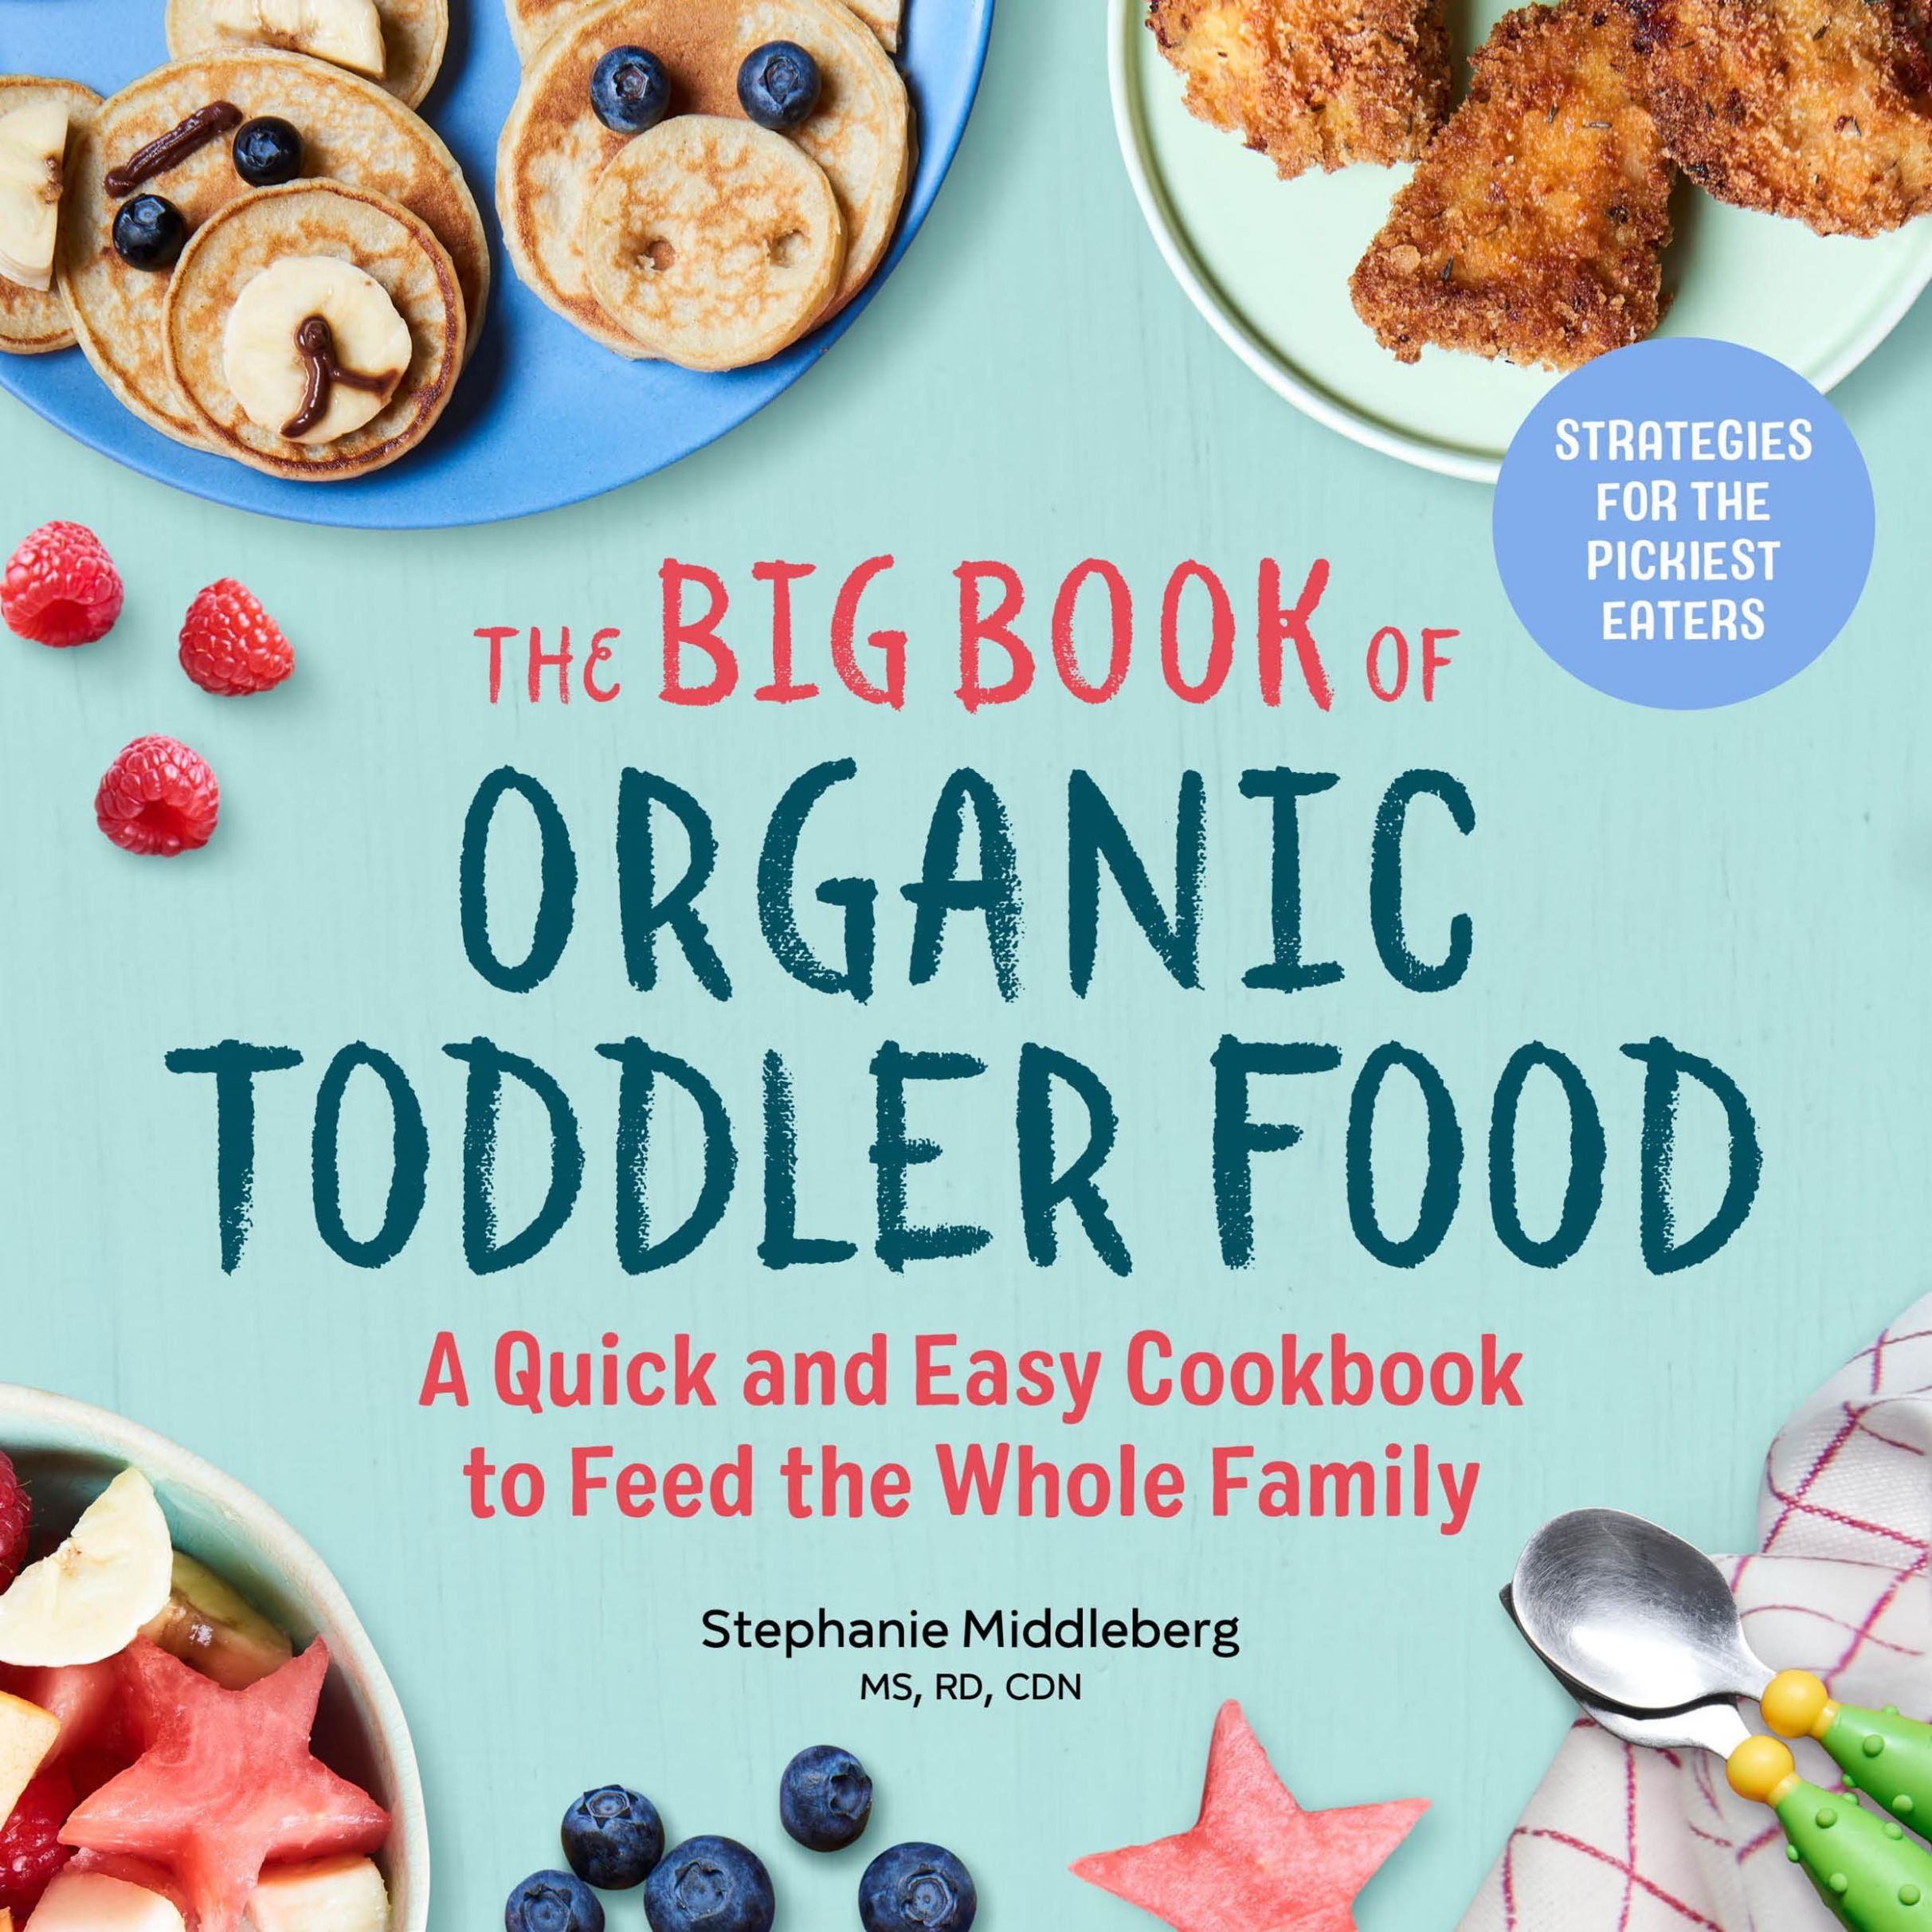 The Big Book of Organic Toddler Food: A Quick and Easy Cookbook to ..